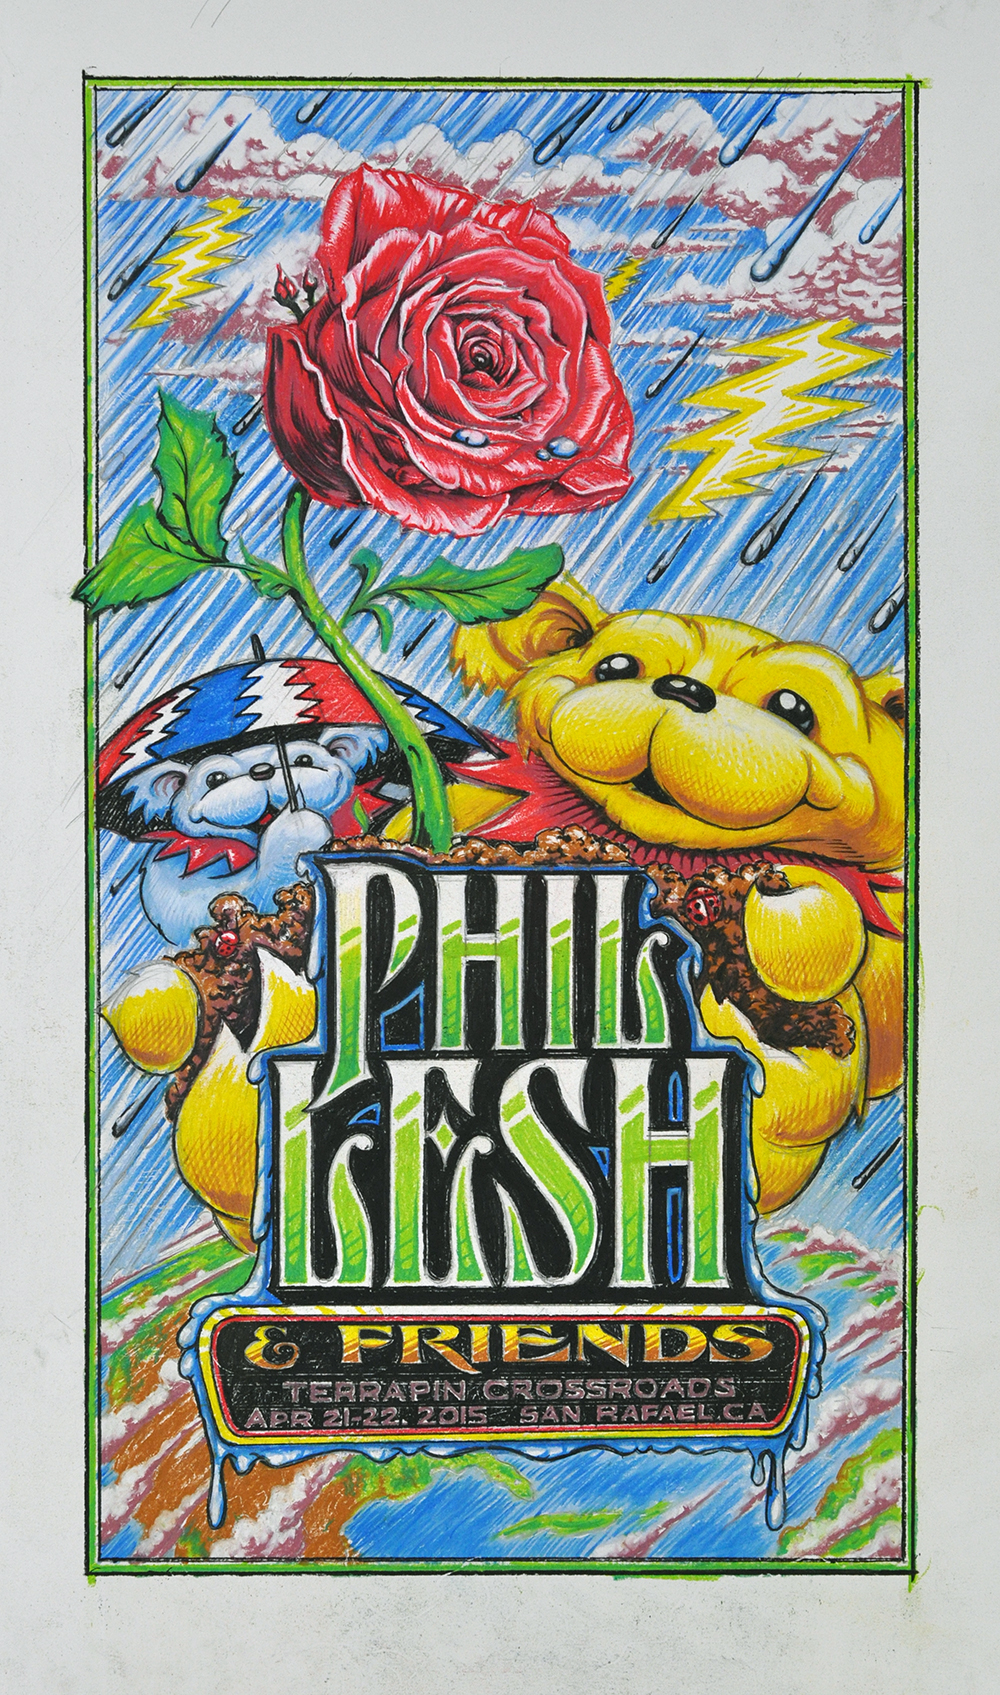 15PhilLesh_EarthDay.jpg